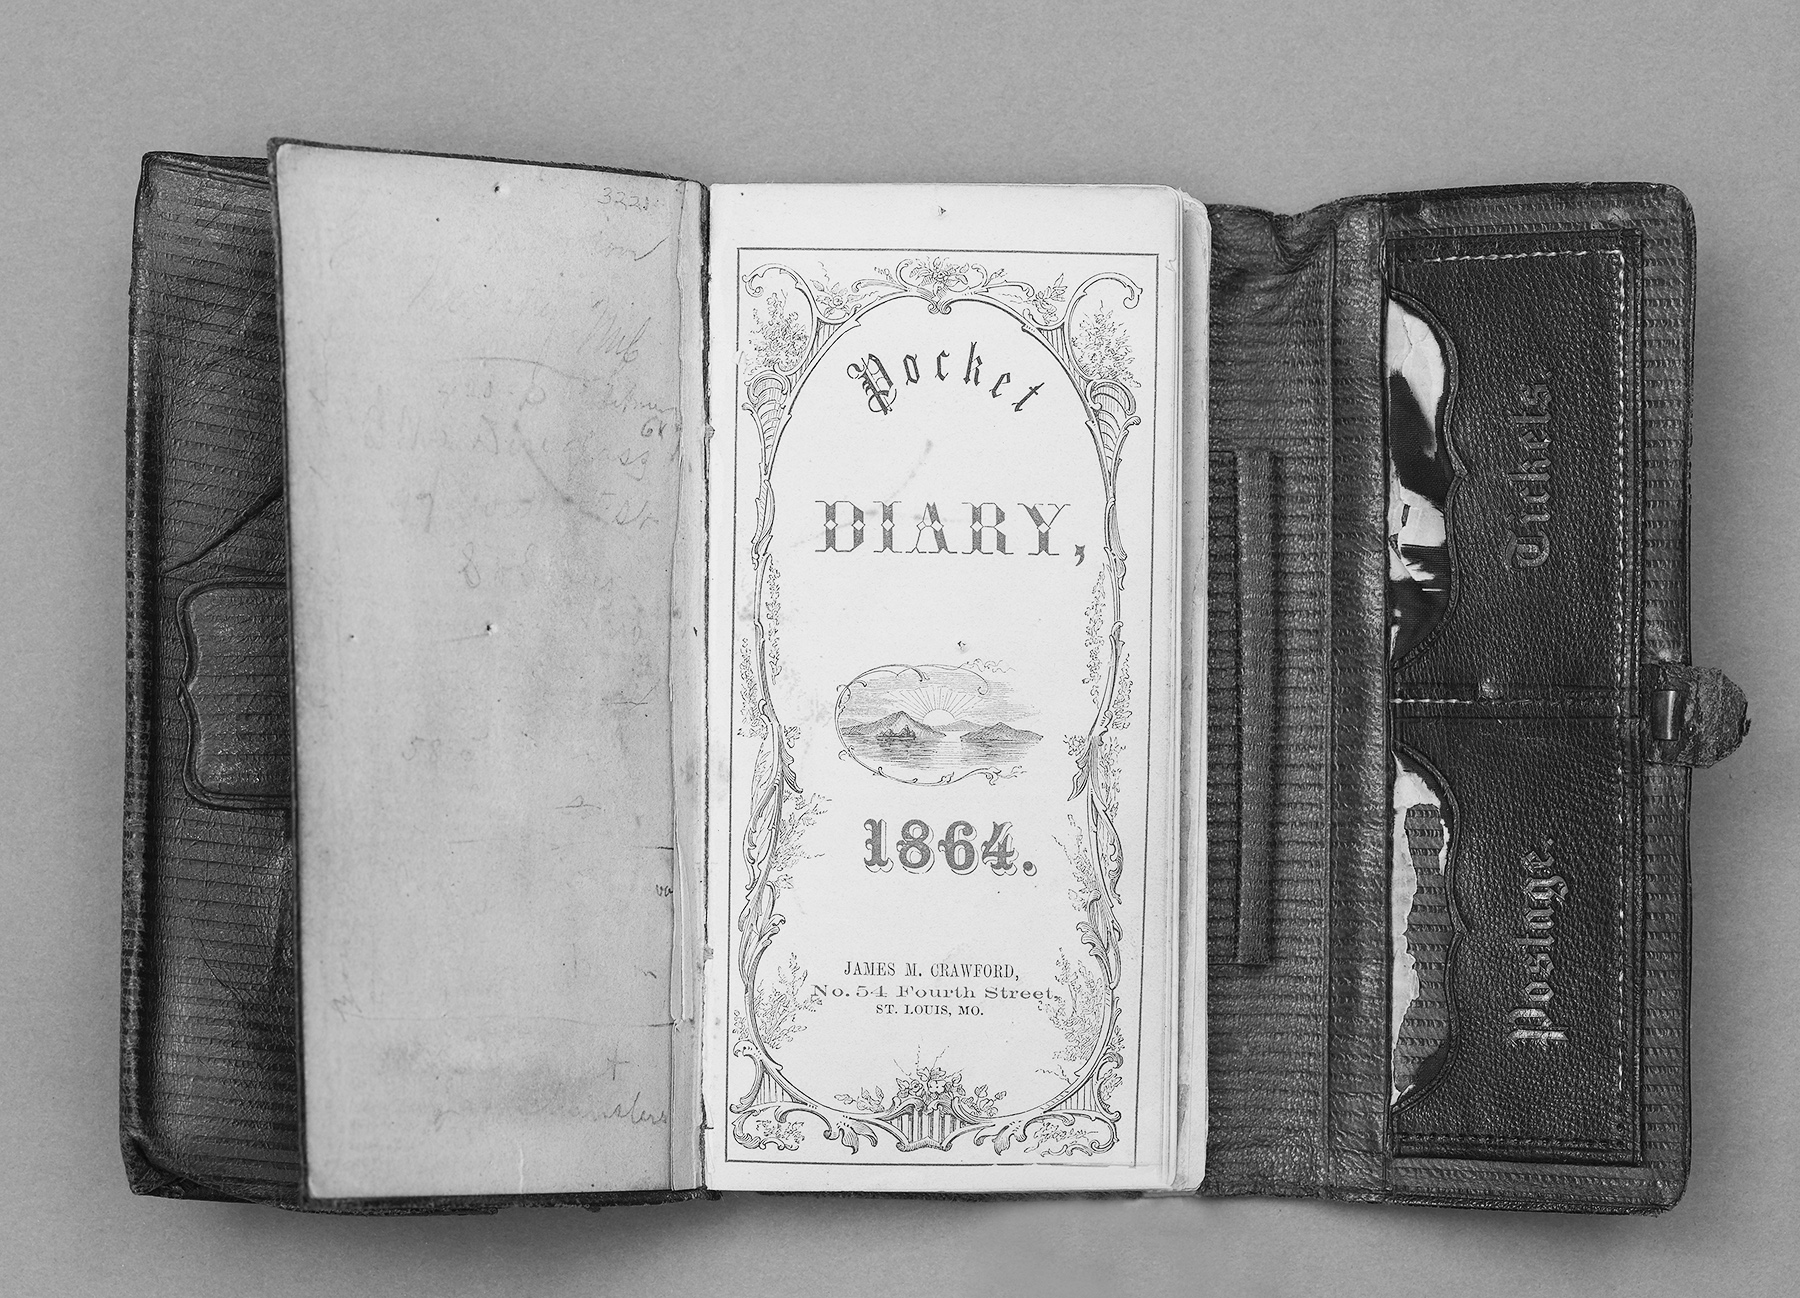 Booth's Diary